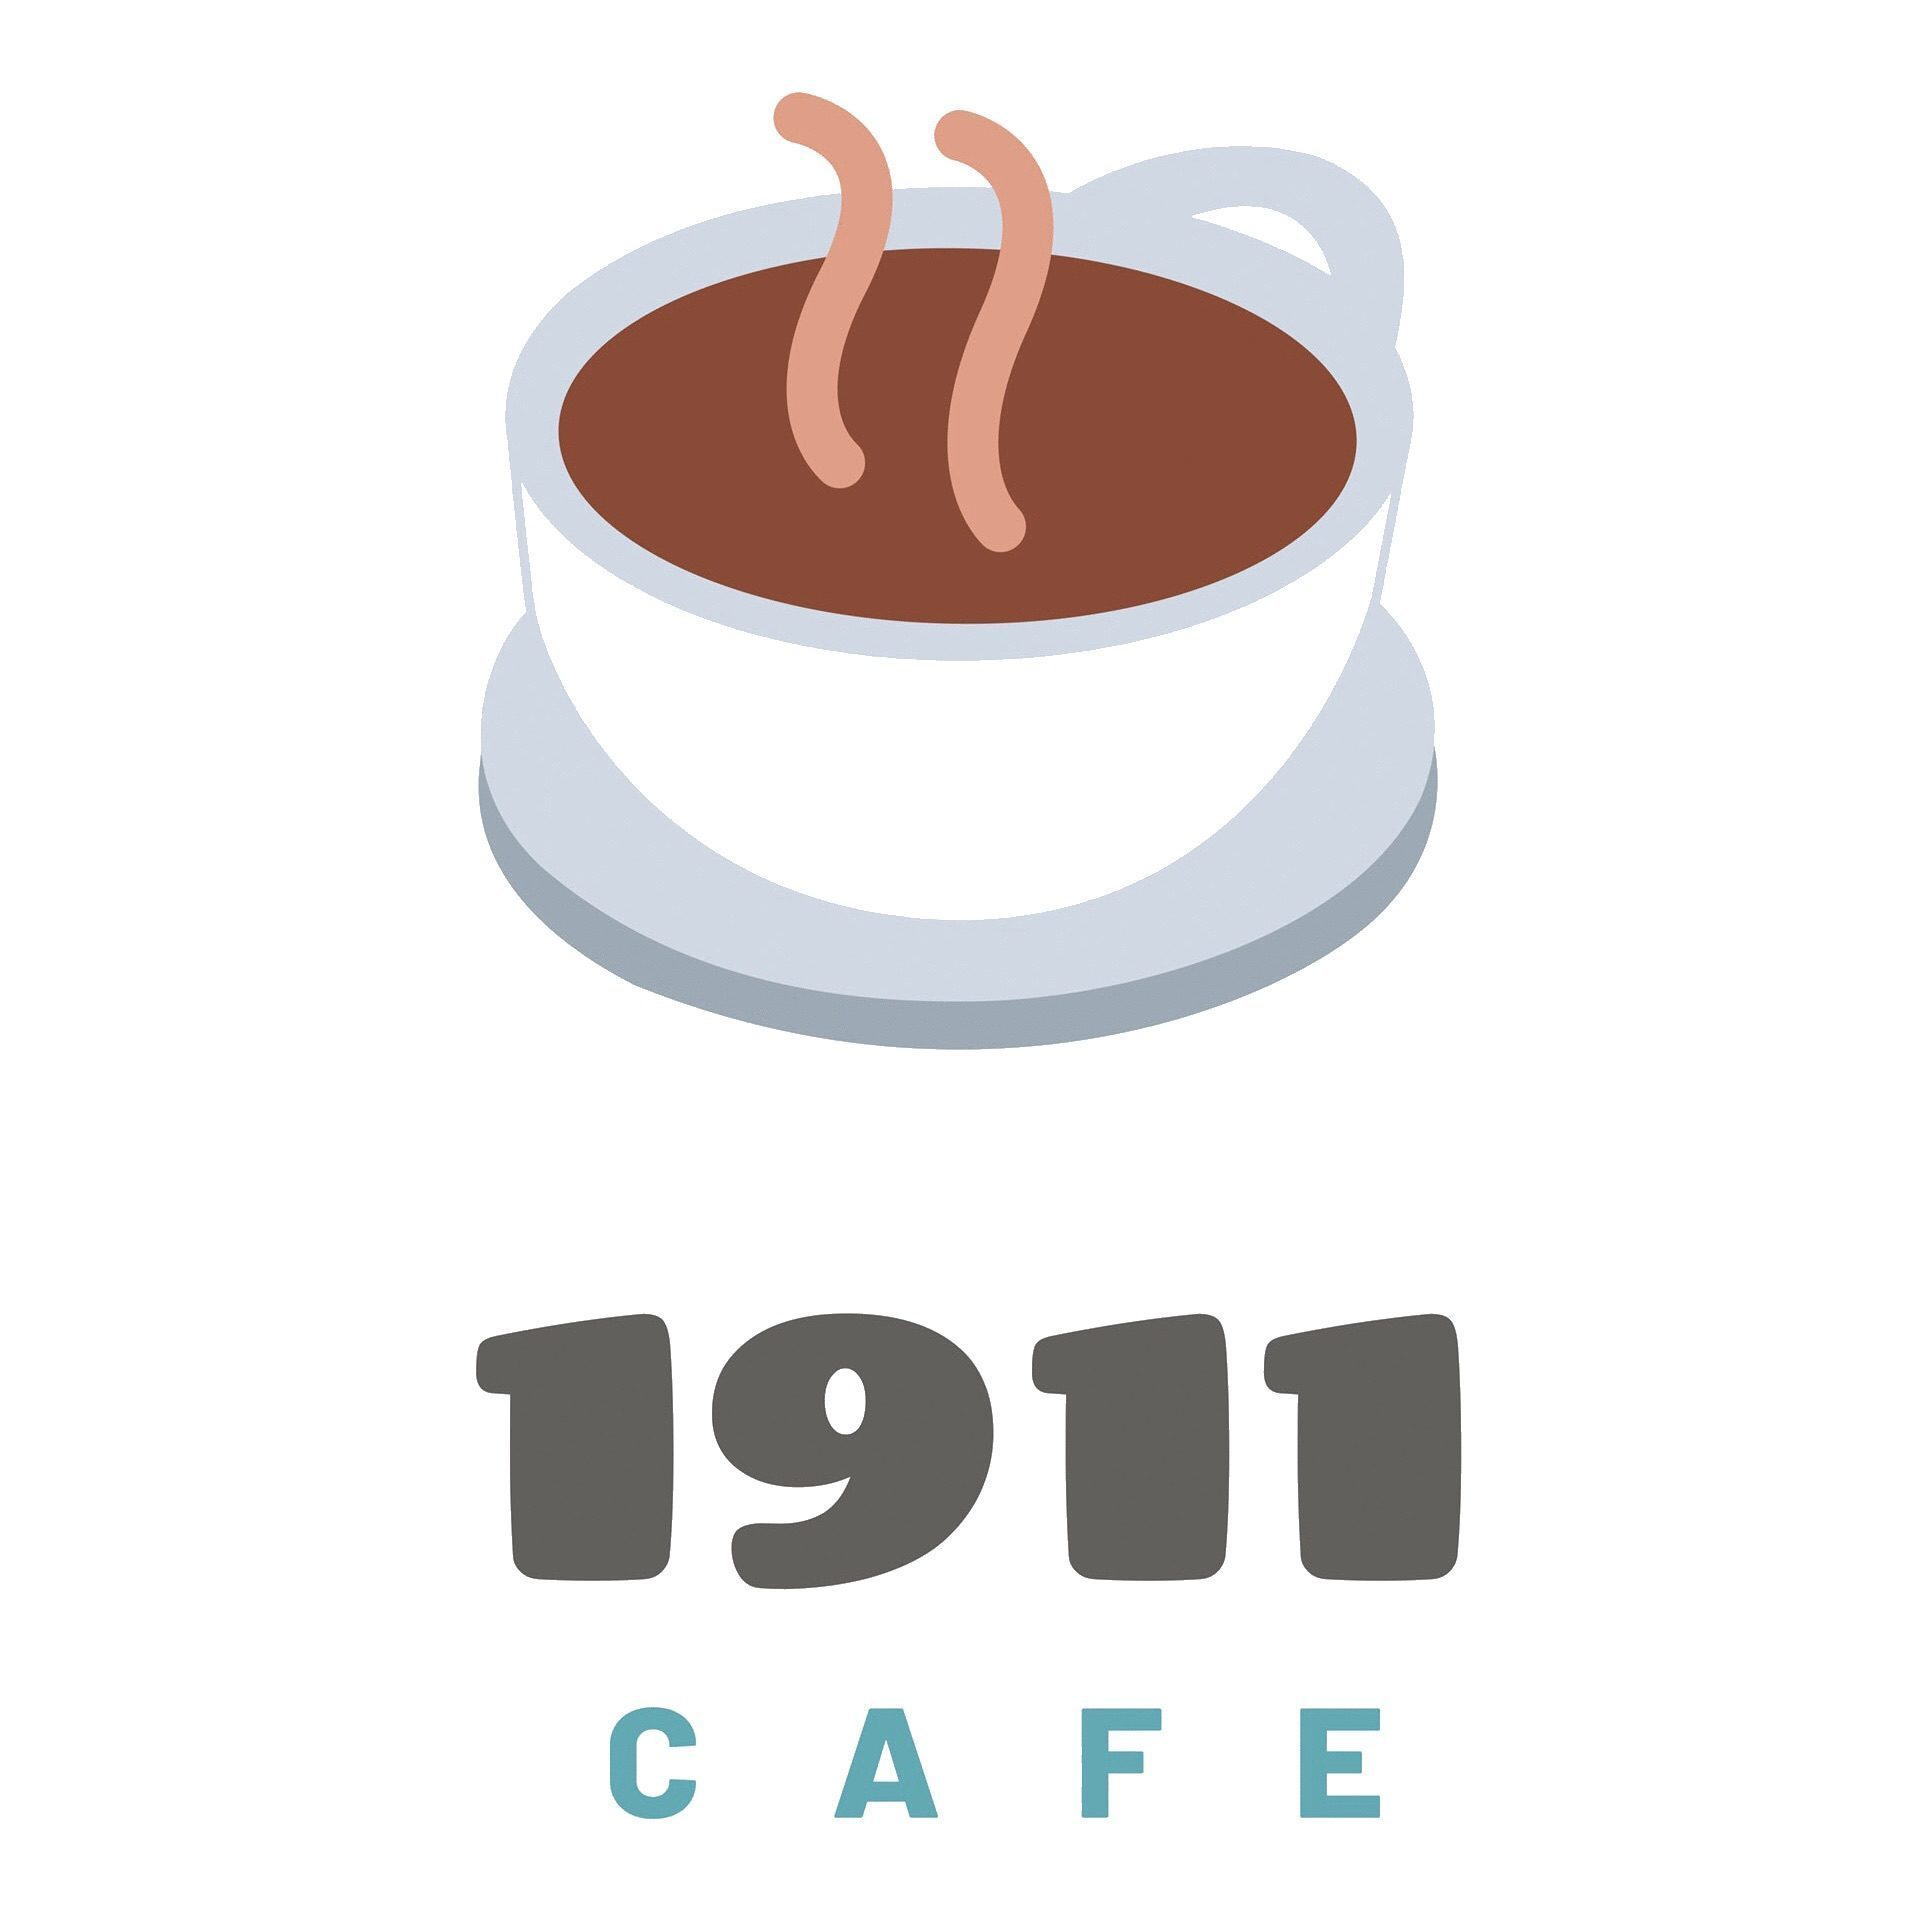 The 1911 Cafe